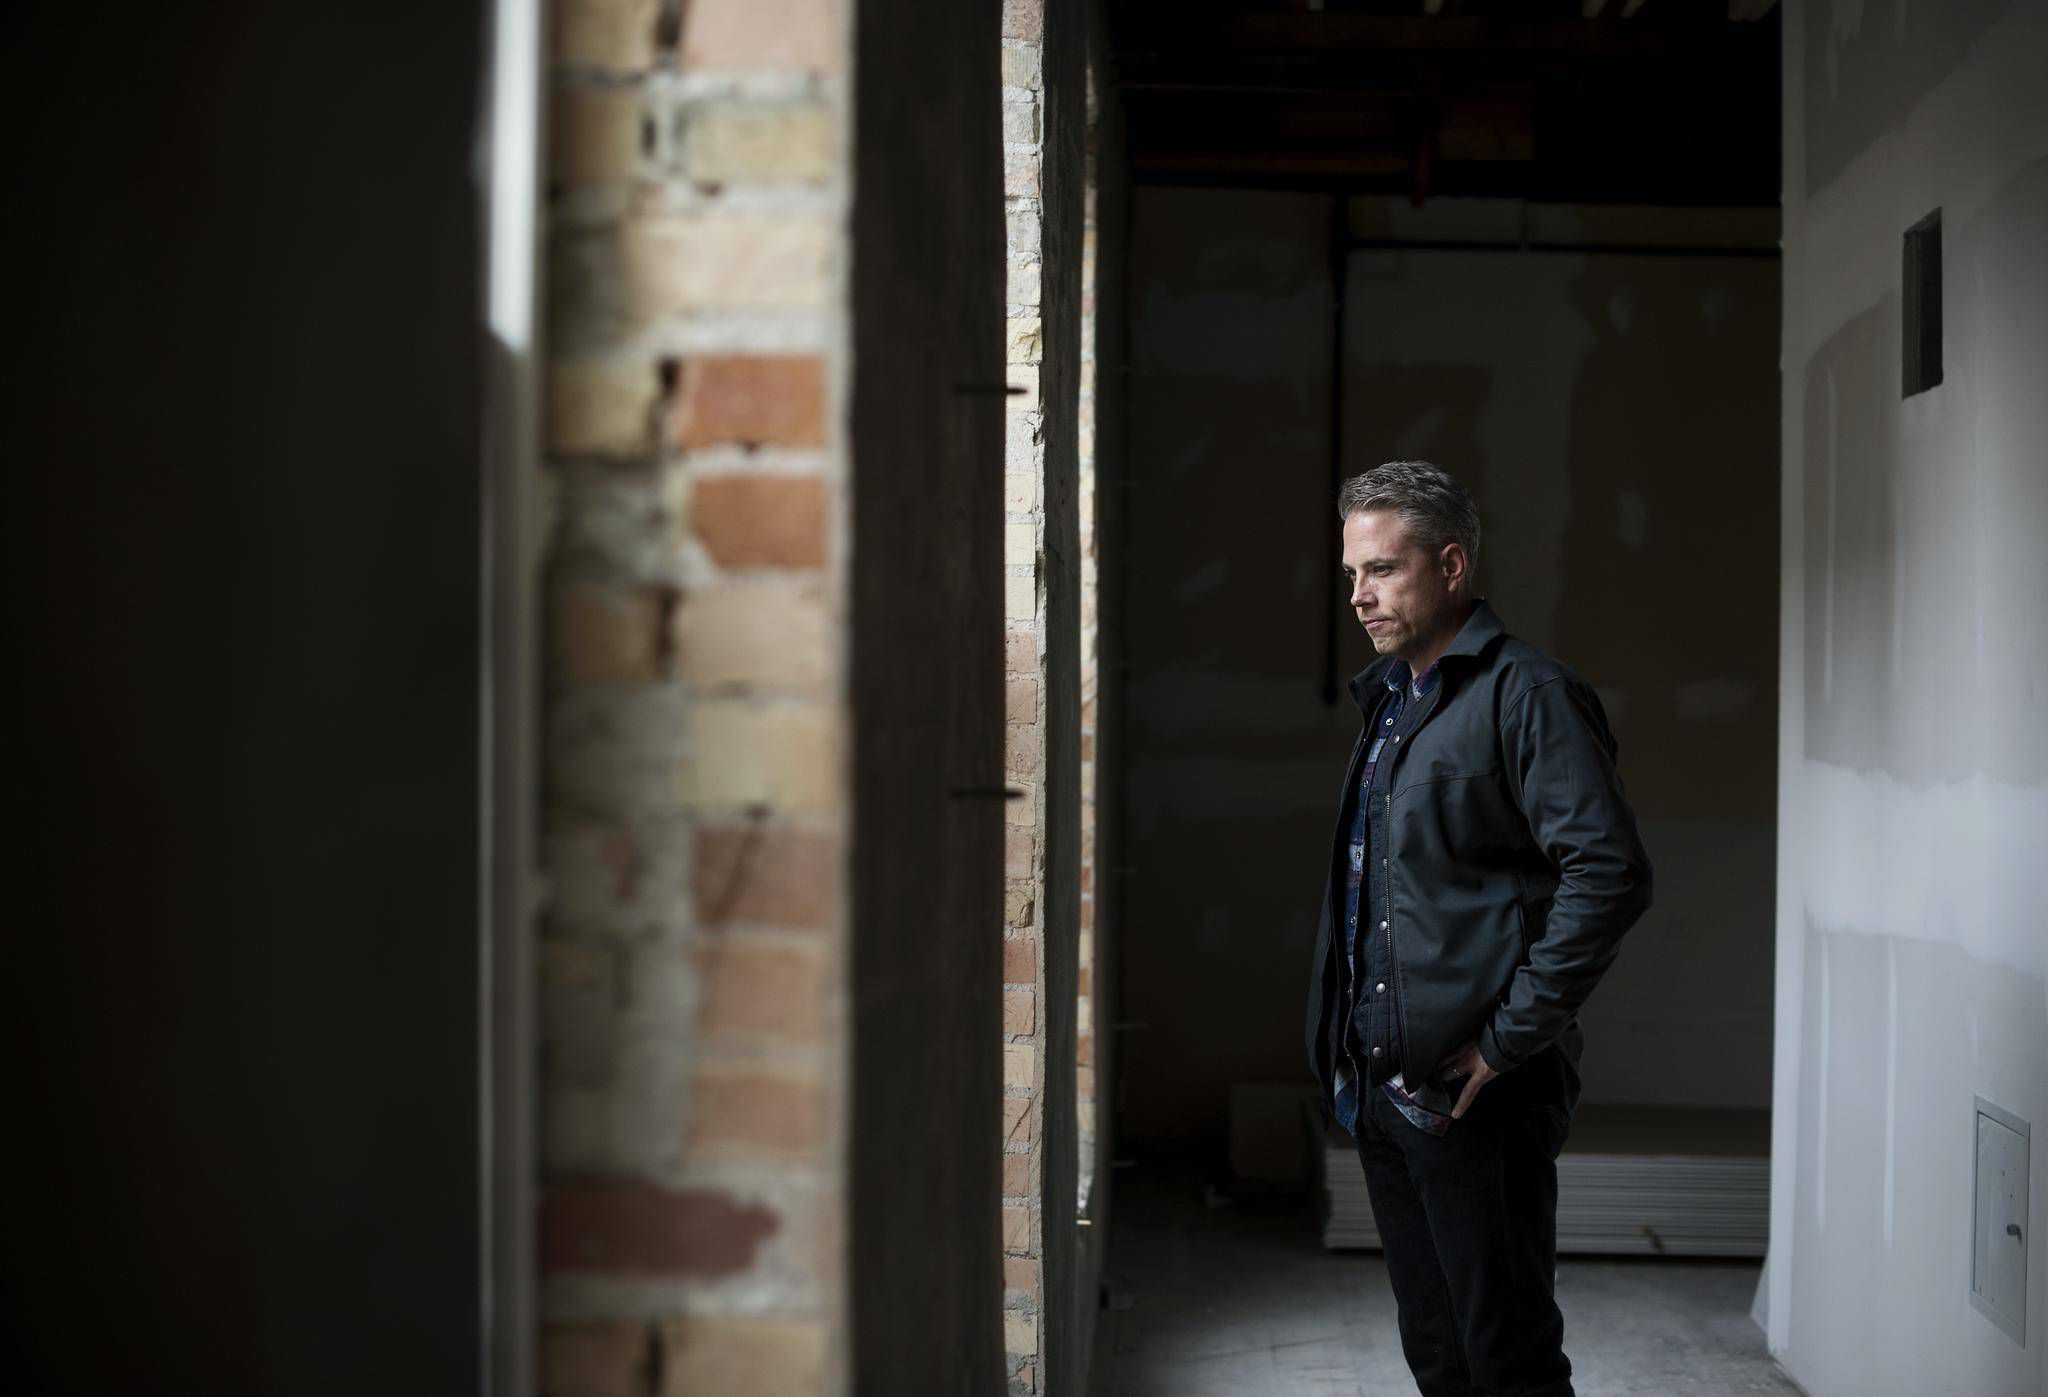 startup boom revitalizing urban kitchener but not all in favour